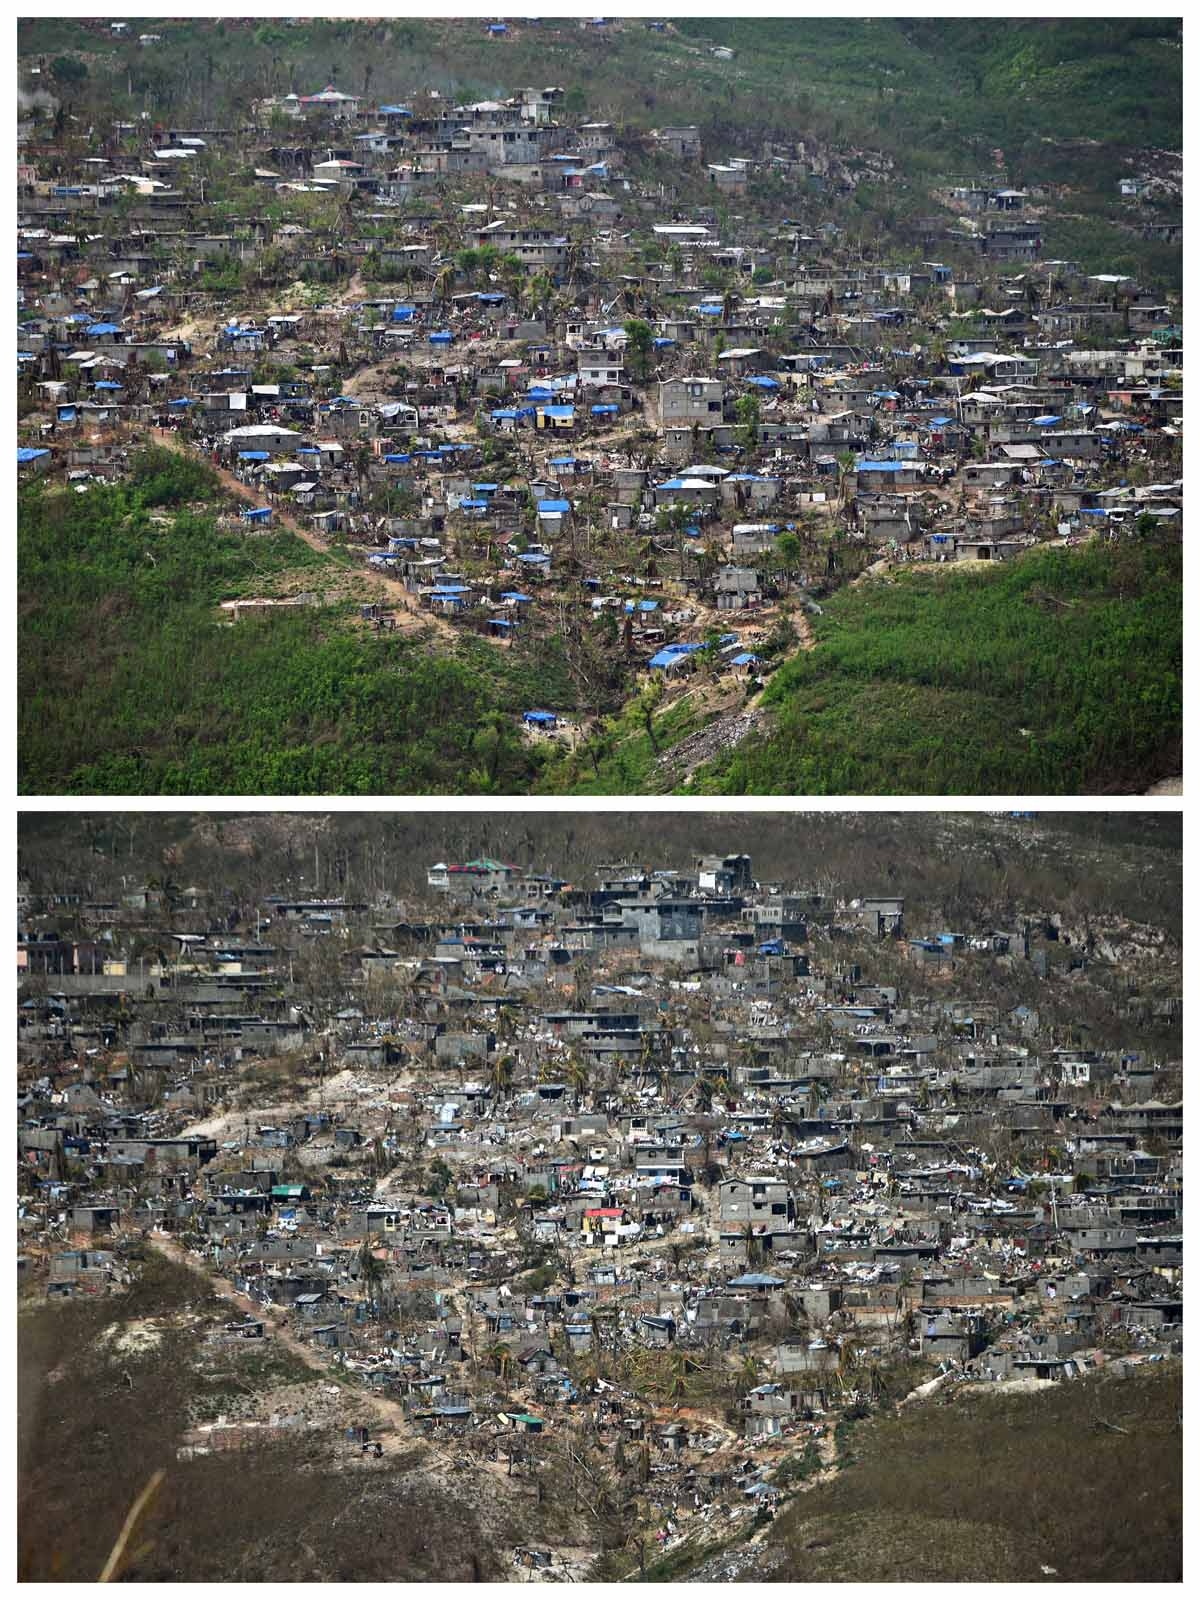 These two pictures show at top damaged houses in Jeremie, southwestern Haiti, on October 22, 2016 two weeks after Hurricane Matthew, and at bottom the same location on October 10, 2016.